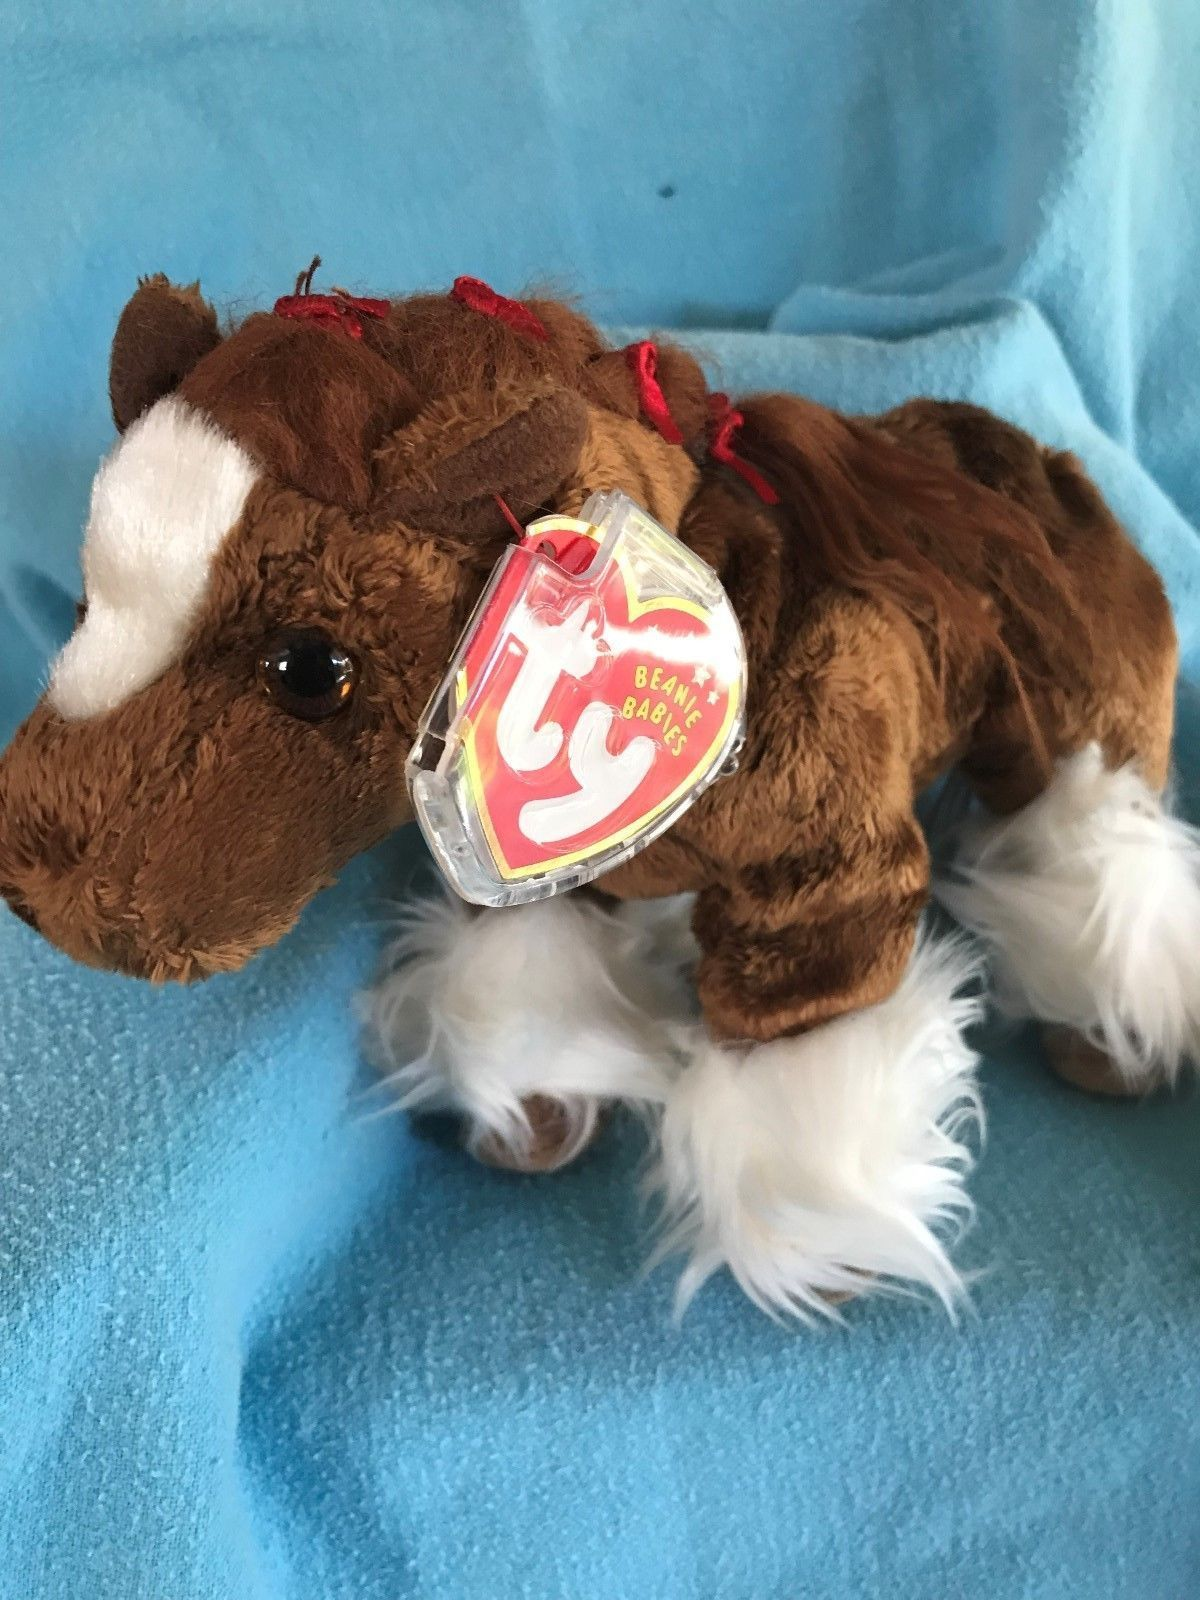 cee55148853 TY Beanie Baby Hoofer the Clydesdale Horse 2001 MWMTs Stuffed Animal Toy   animaltoys